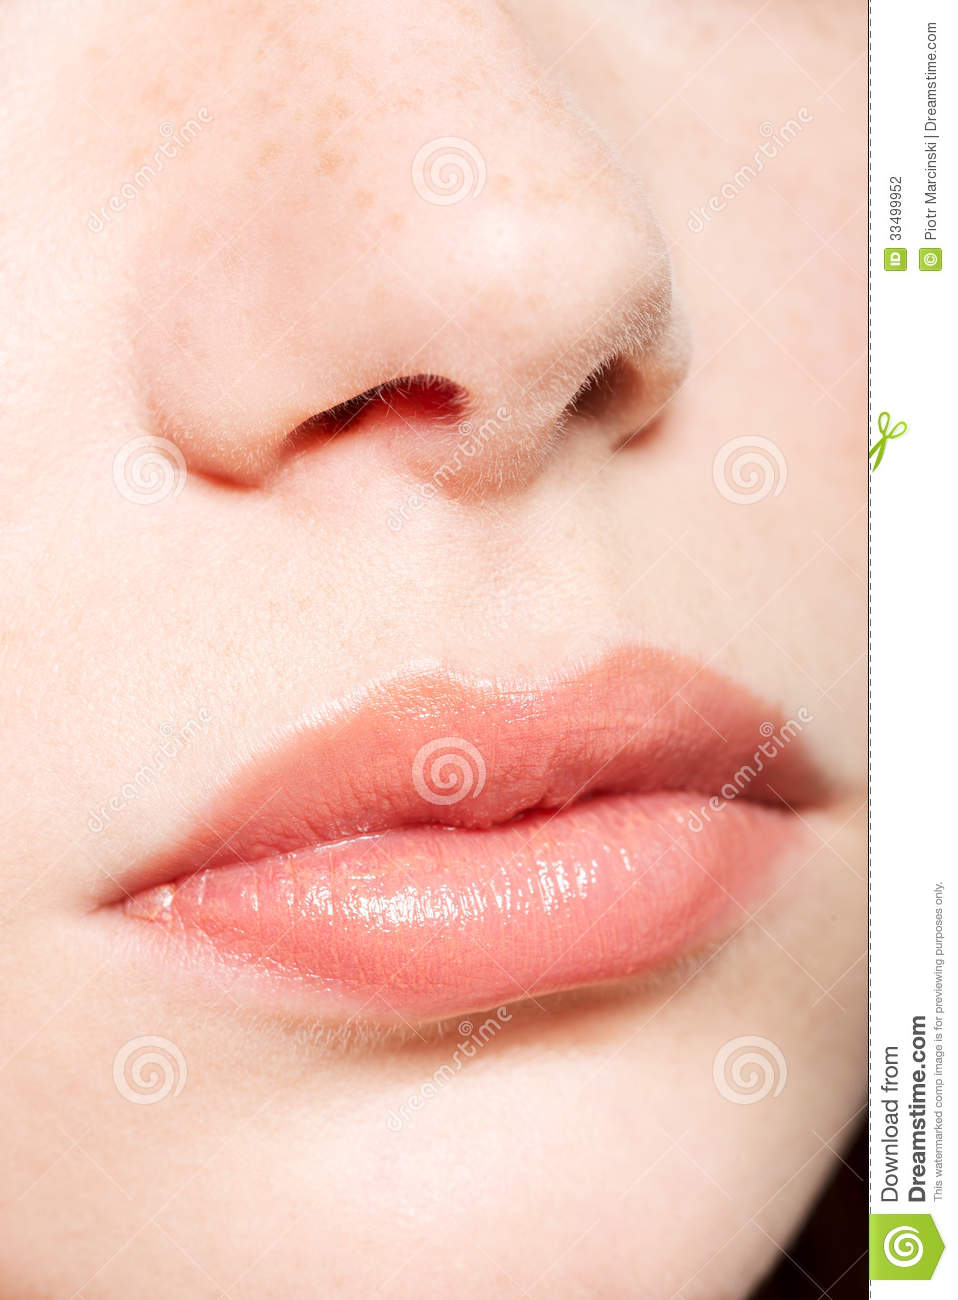 human nose and lips stock photo image of plastic part. Black Bedroom Furniture Sets. Home Design Ideas